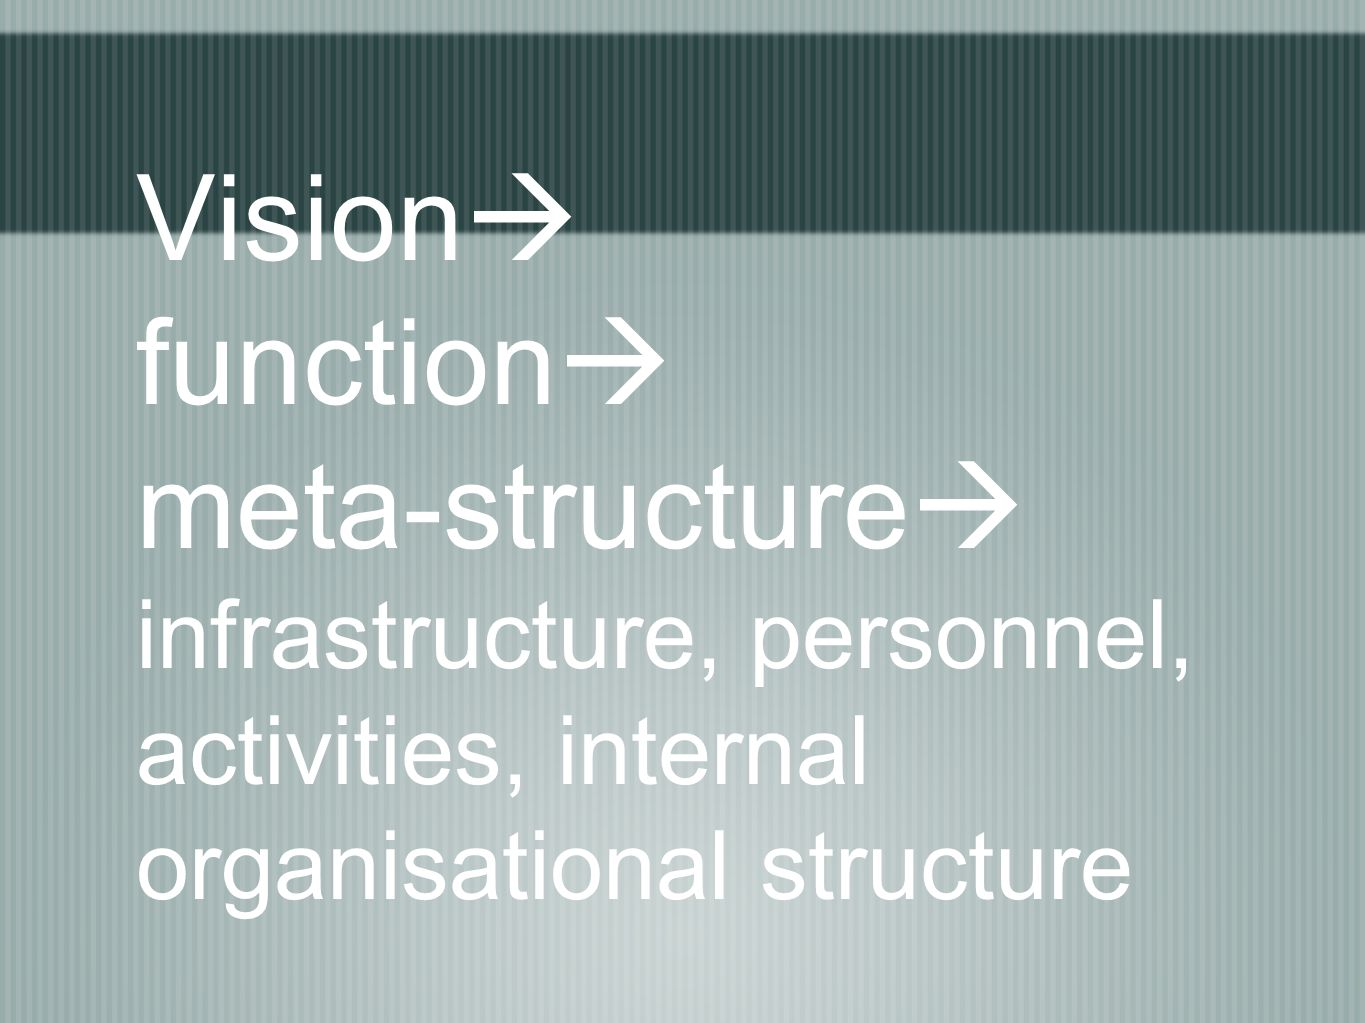 Vision function meta-structure infrastructure, personnel, activities, internal organisational structure